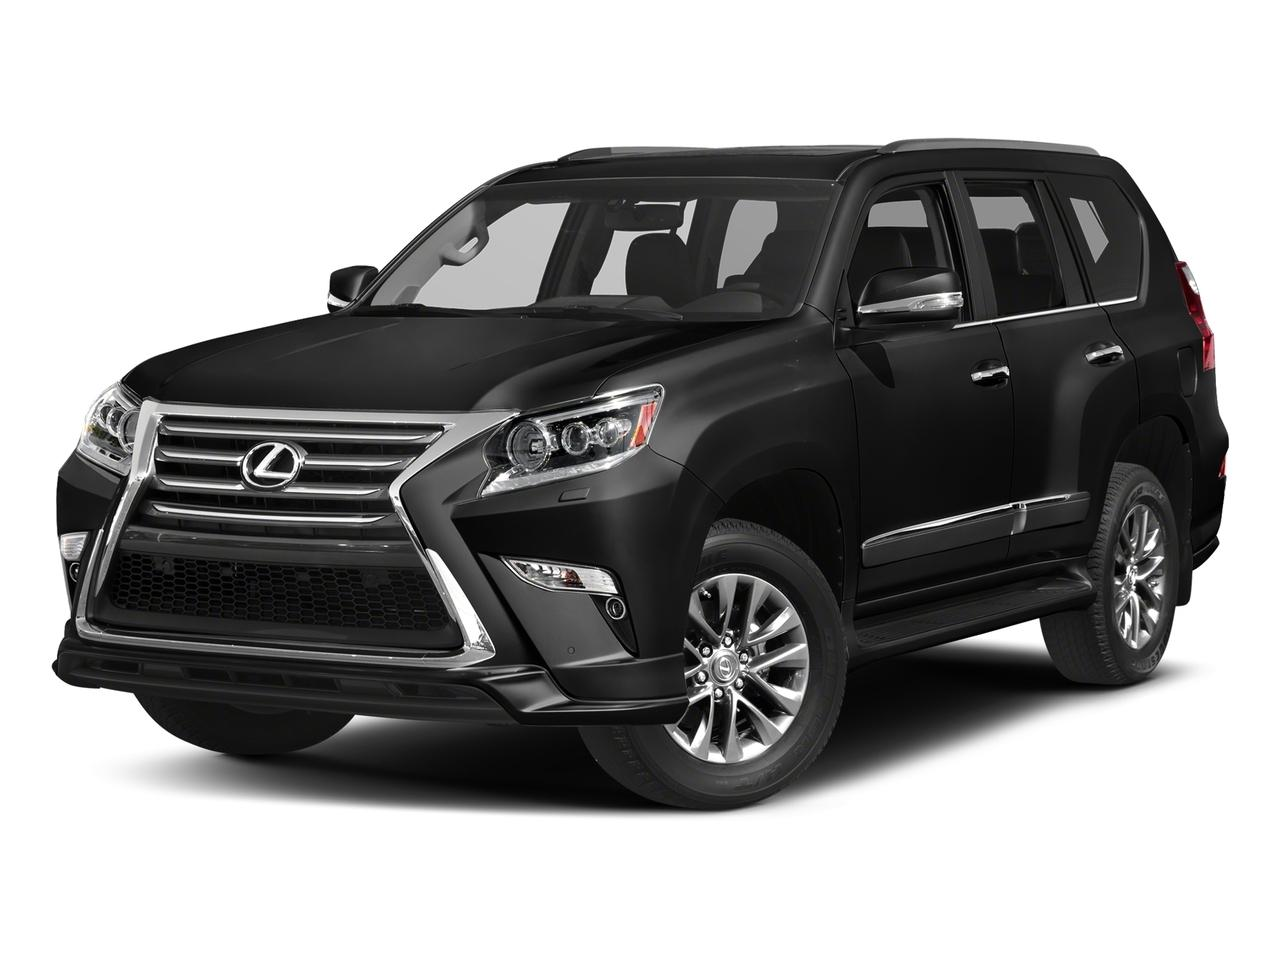 2017 Lexus GX 460 Vehicle Photo in Houston, TX 77074